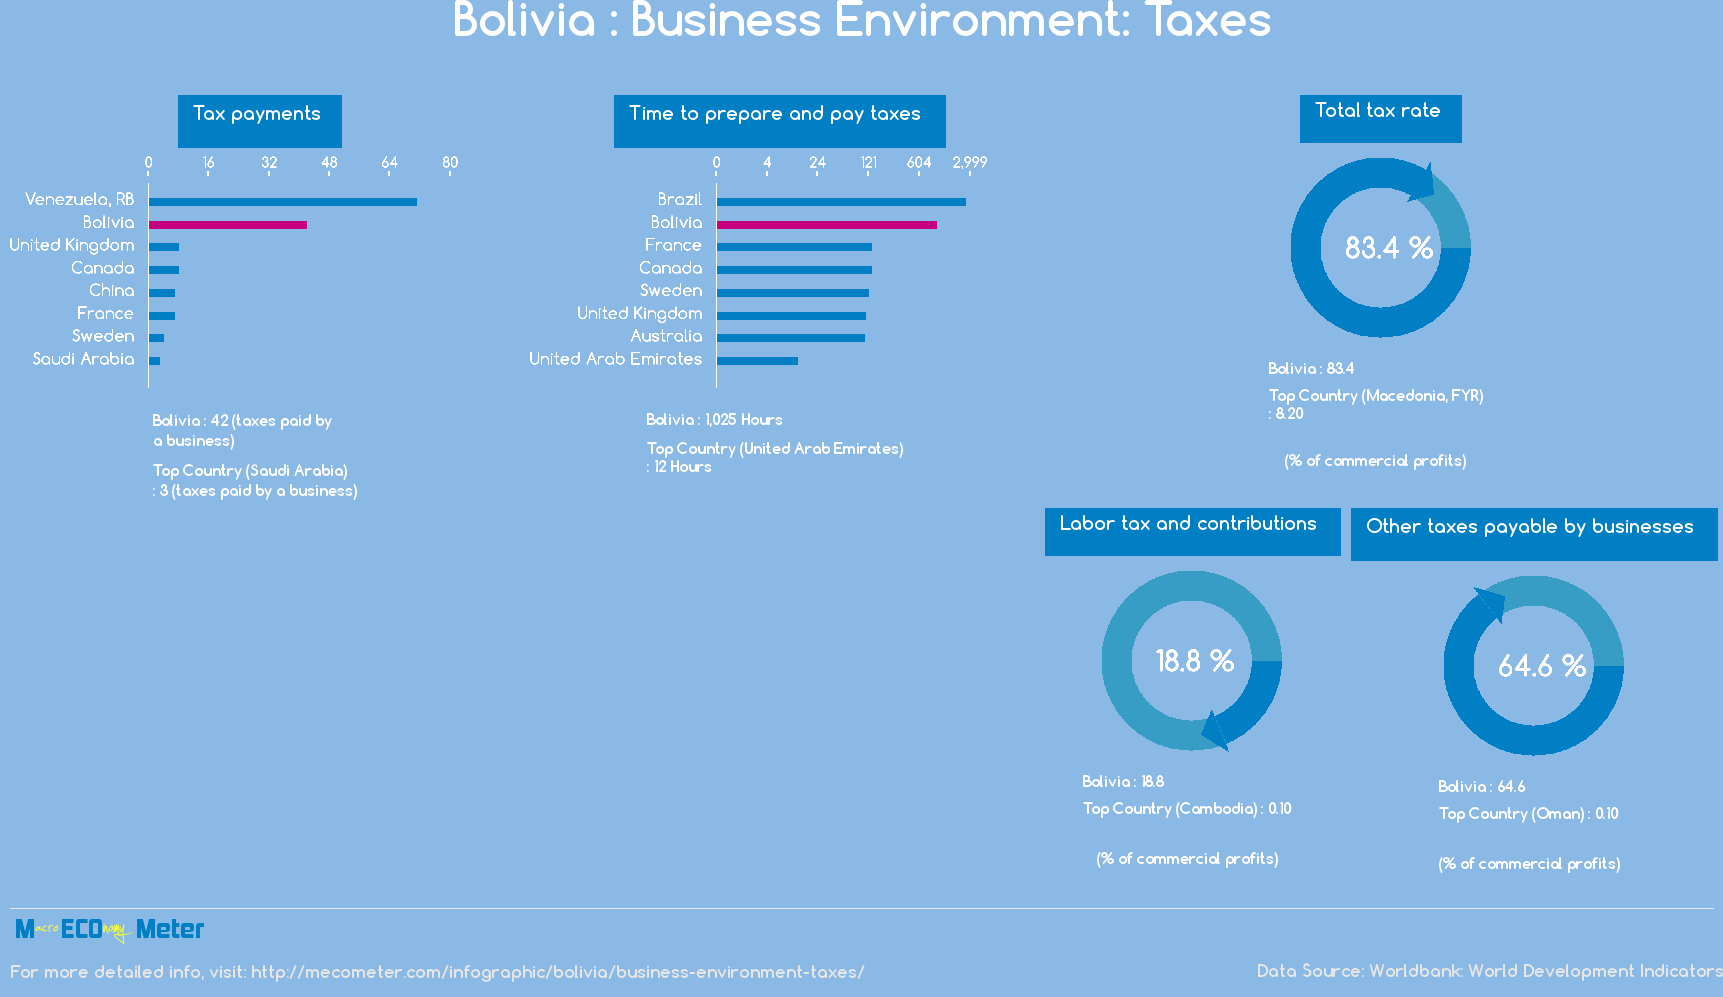 Bolivia : Business Environment: Taxes